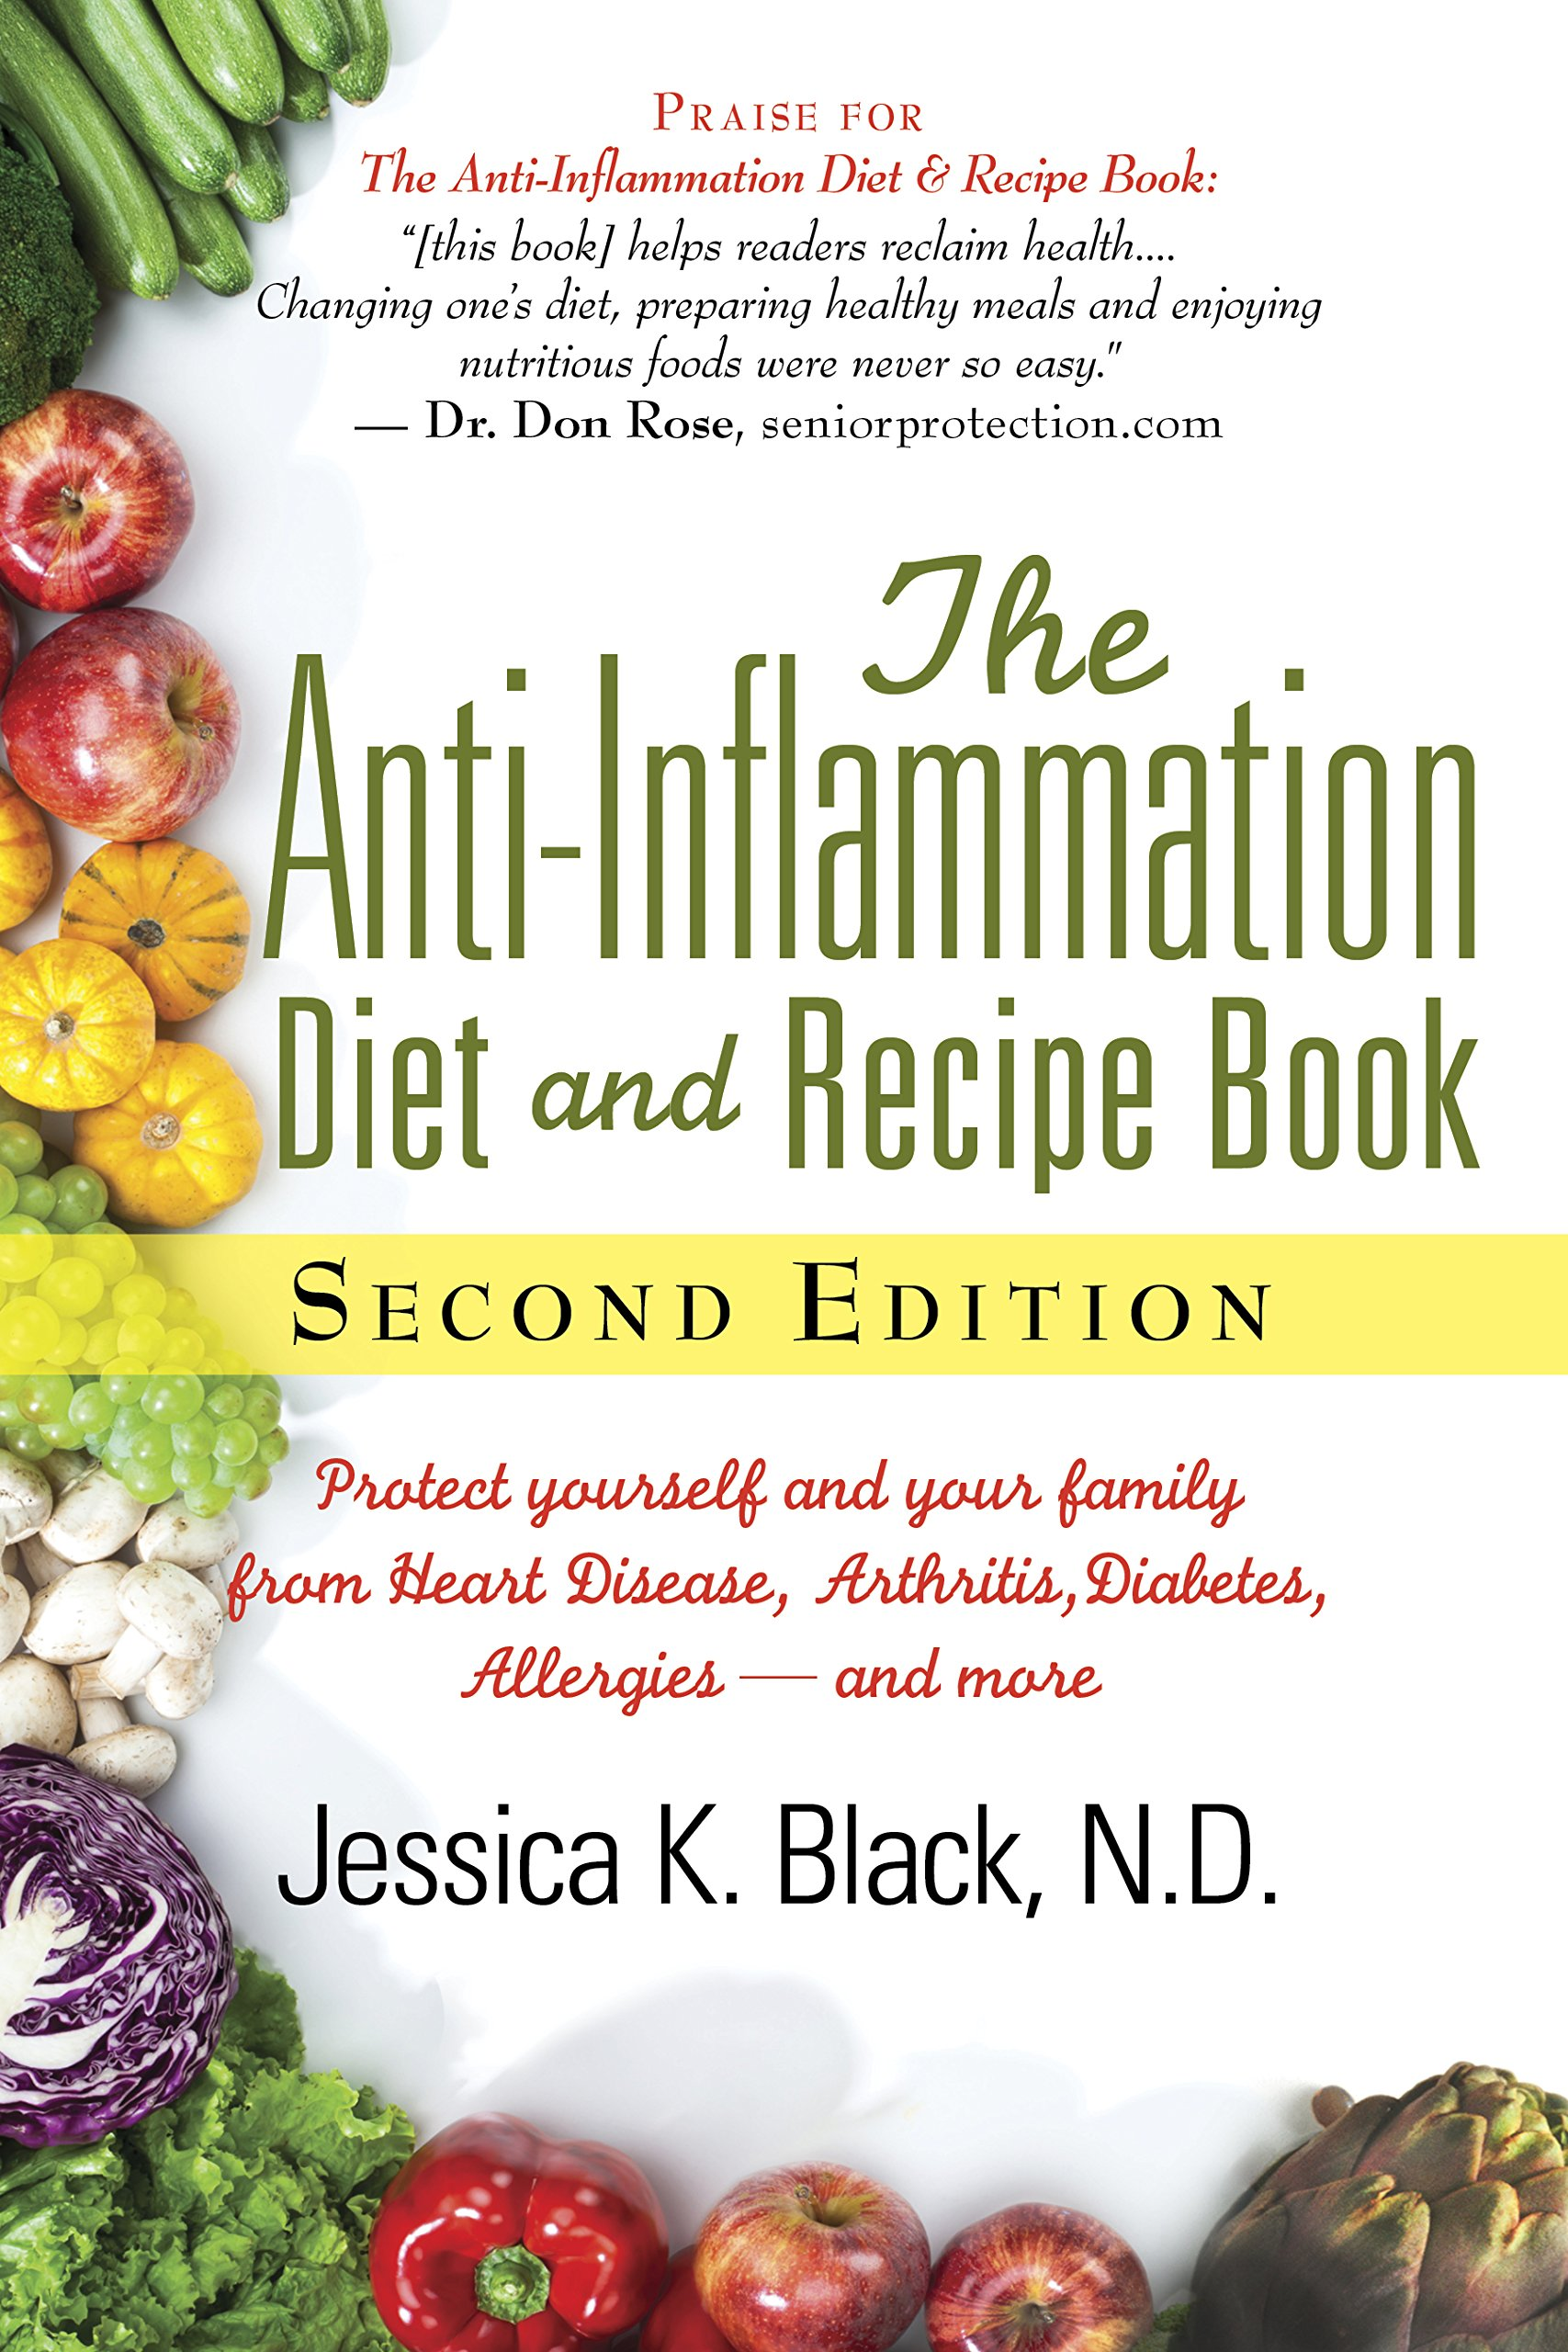 The Anti-Inflammation Diet and Recipe Book, Second Edition: Protect Yourself and Your Family from Heart Disease, Arthritis, Diabetes, Allergies, —and More pdf